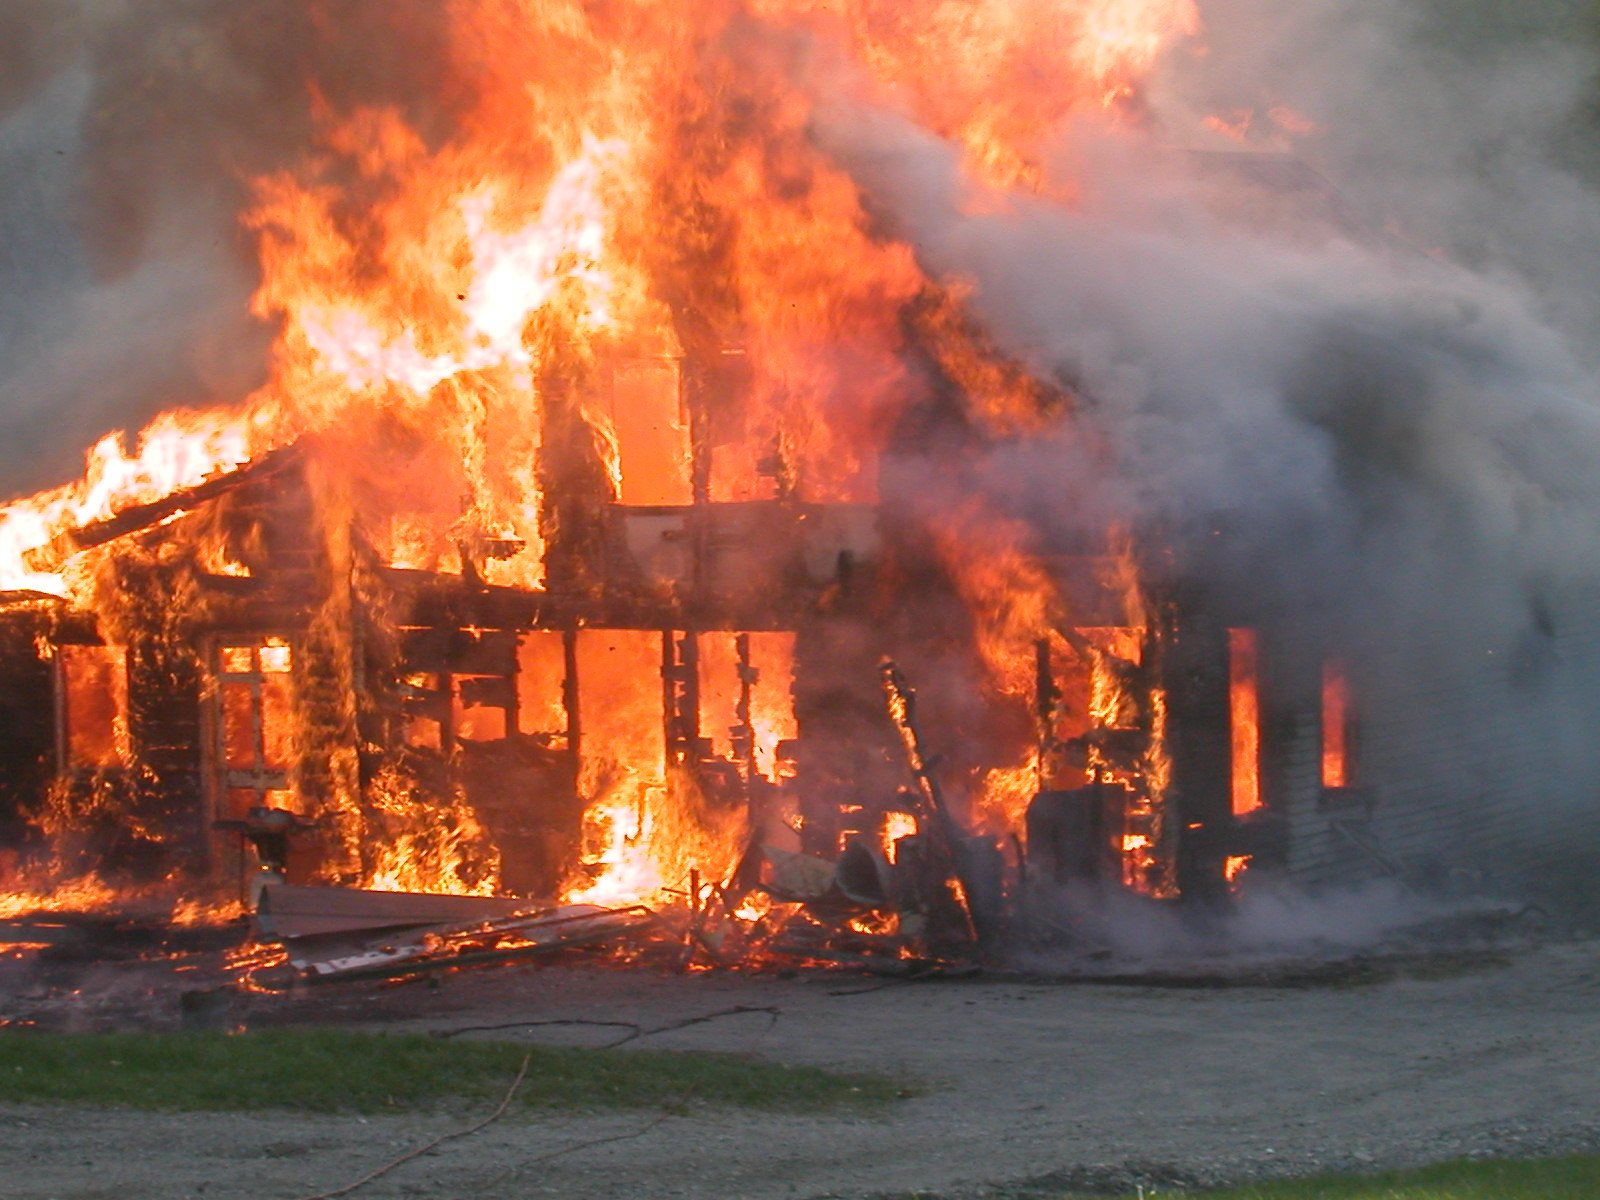 a house on fire Get the latest house fire news in the border region on itv news videos, stories and updates.